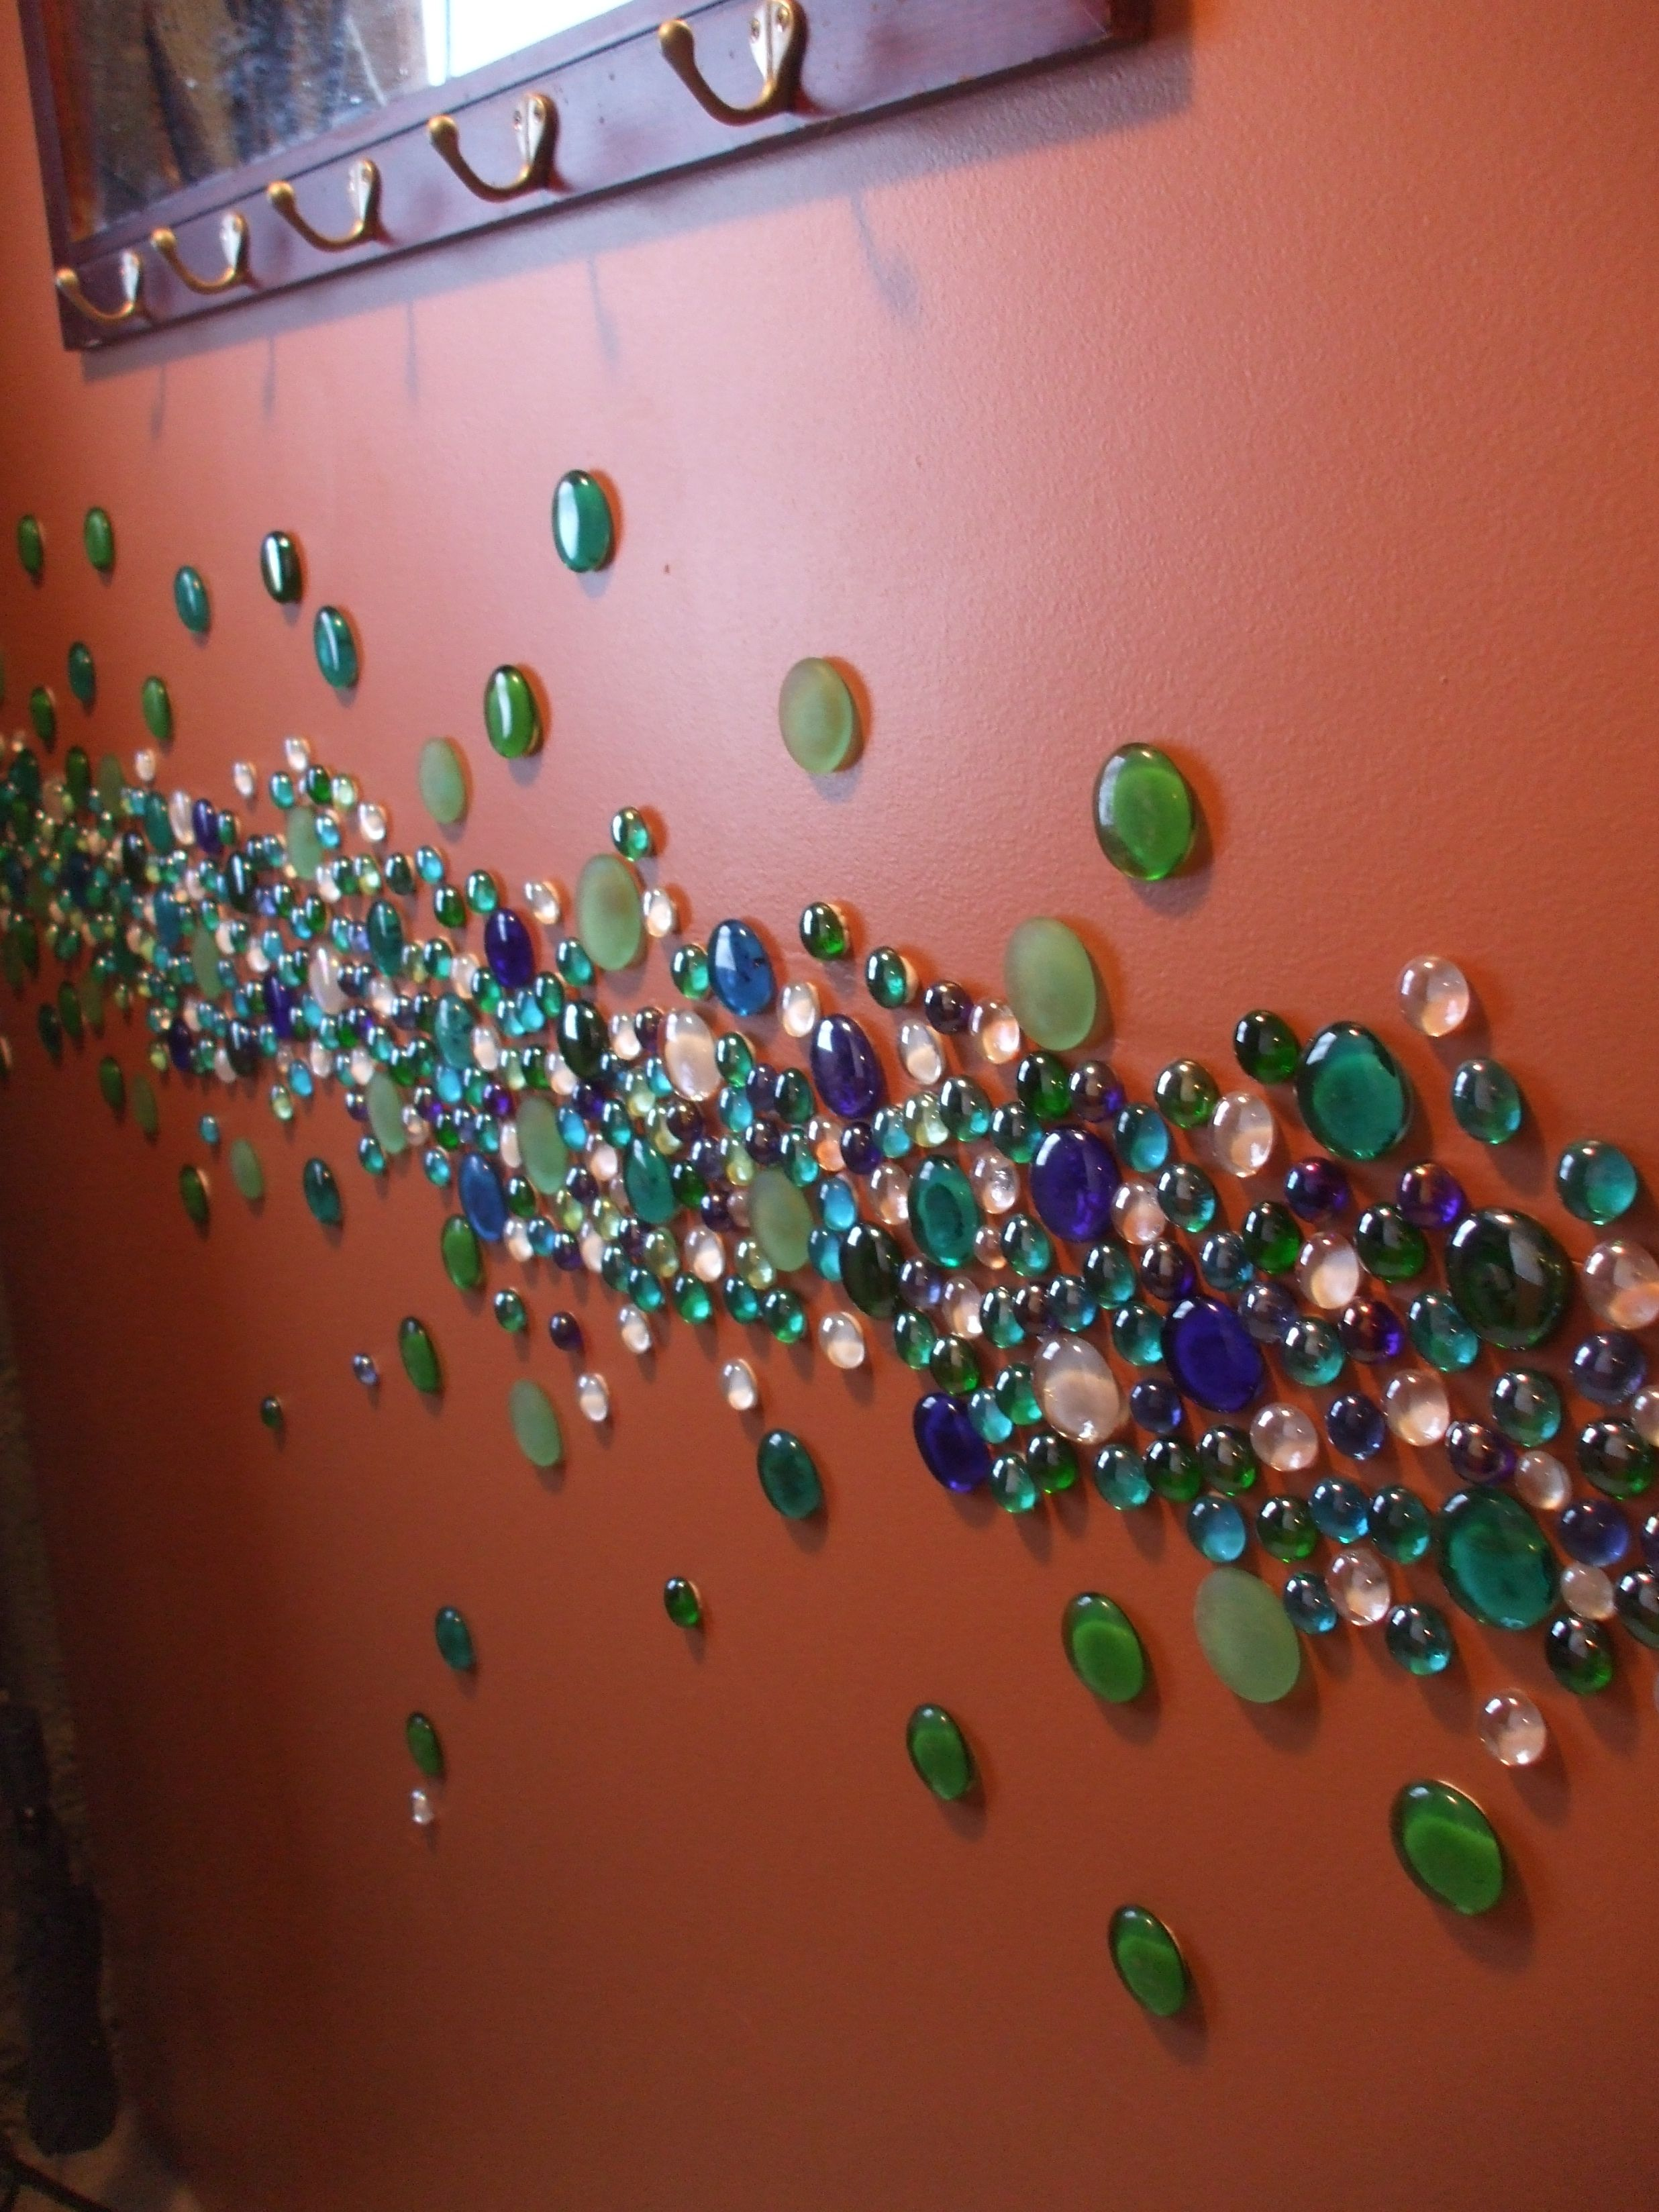 Flat pebbles for crafts - A Fun Way To Brighten A Wall With Flat Glass Pebbles